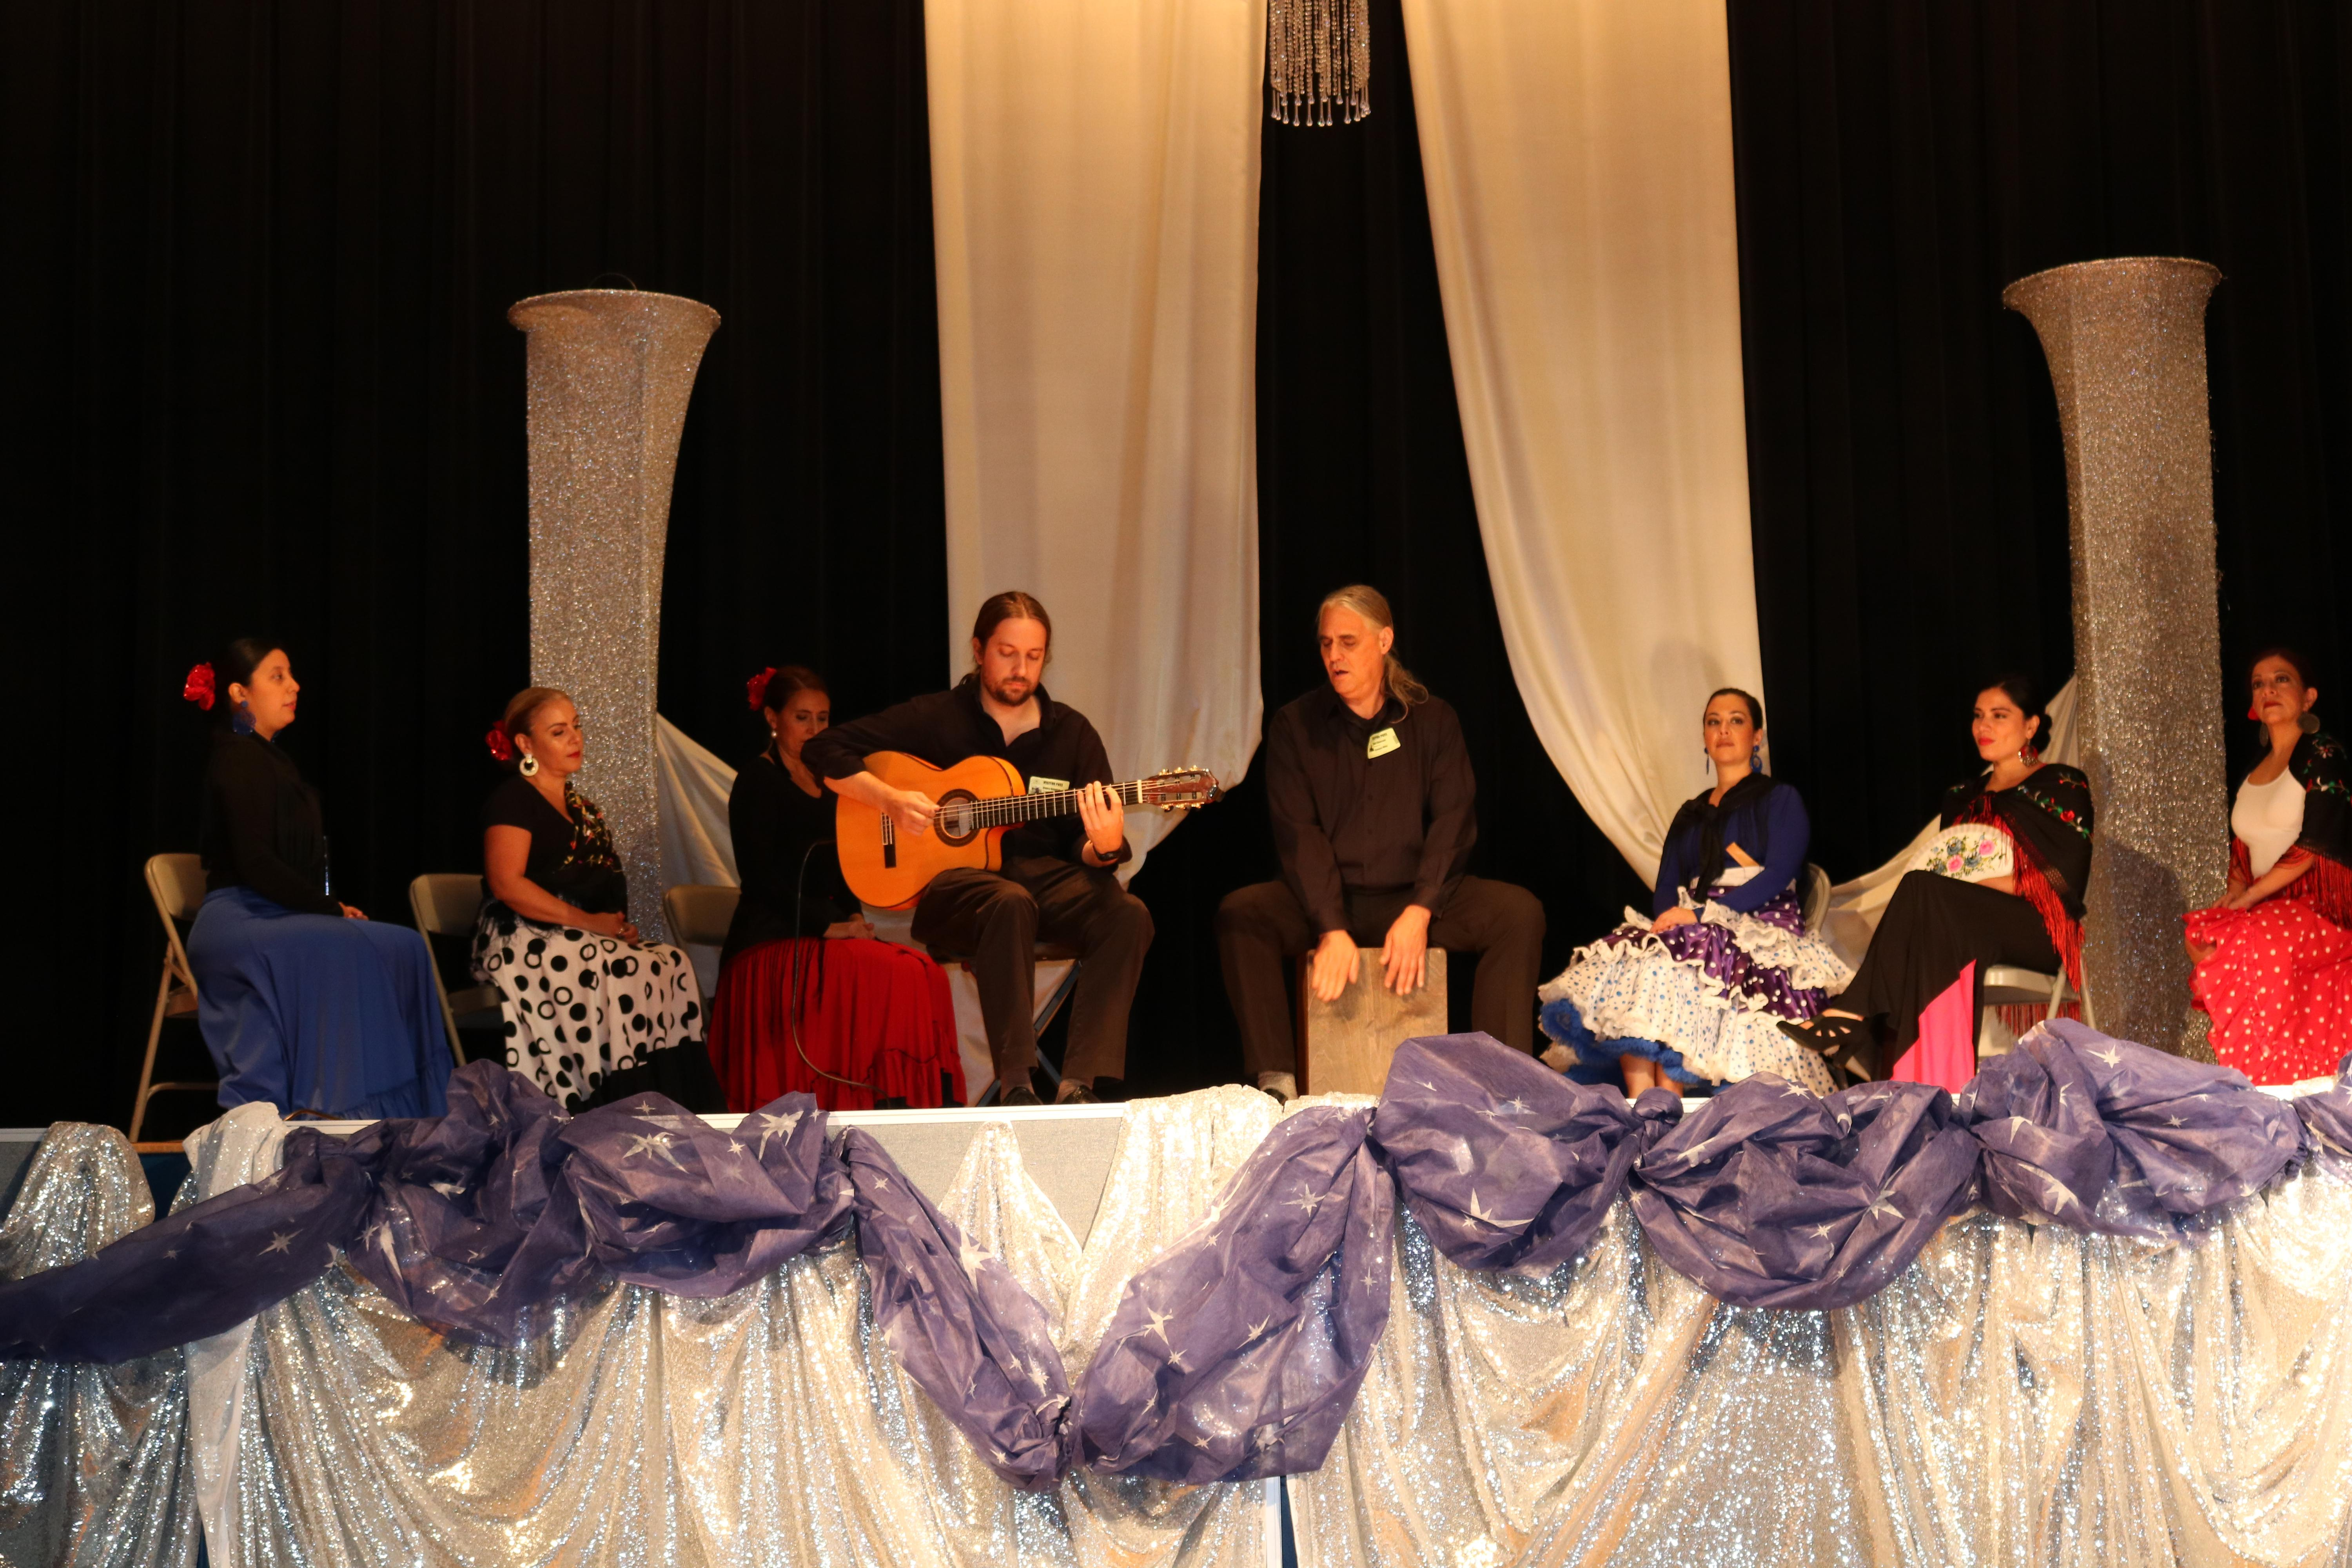 CP teachers in flamenco costumes accompanying two musicians one with a guitar and the other the mambo drum